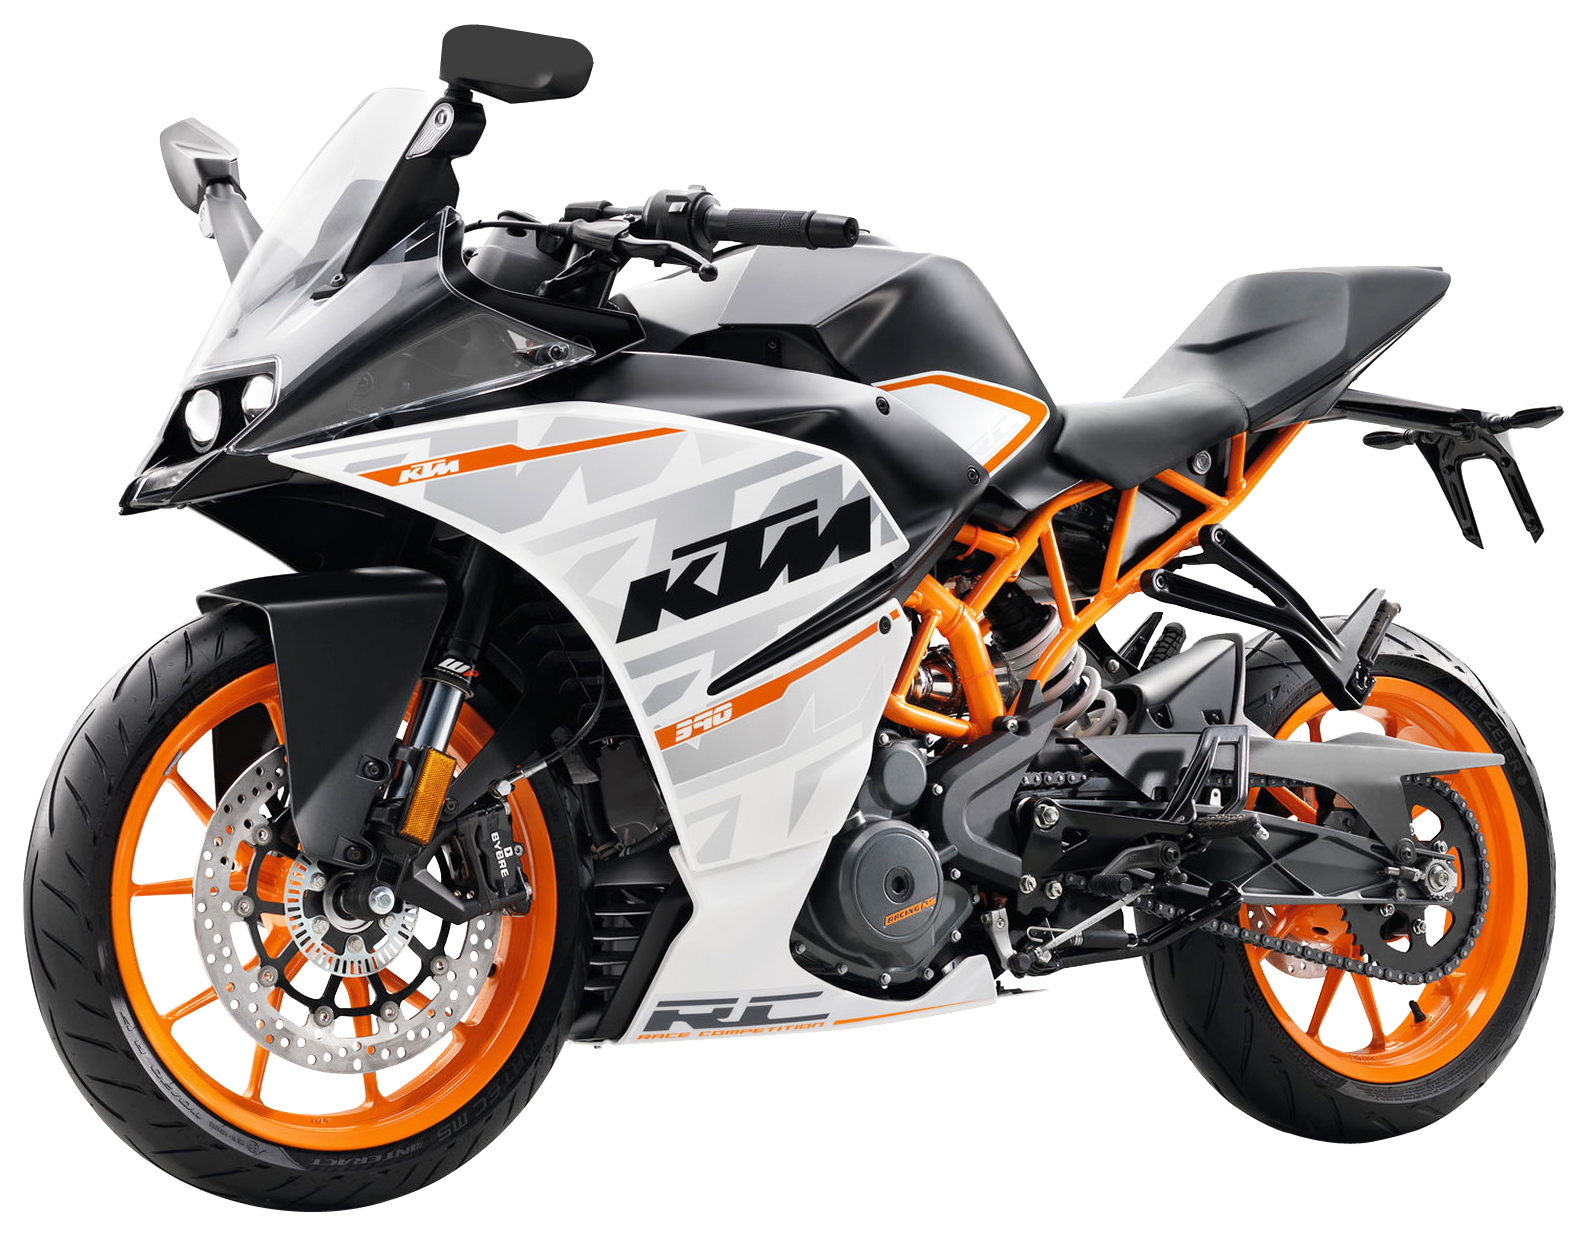 KTM RC 390 Motorcycle Bike PNG Image - PNG HD Bike